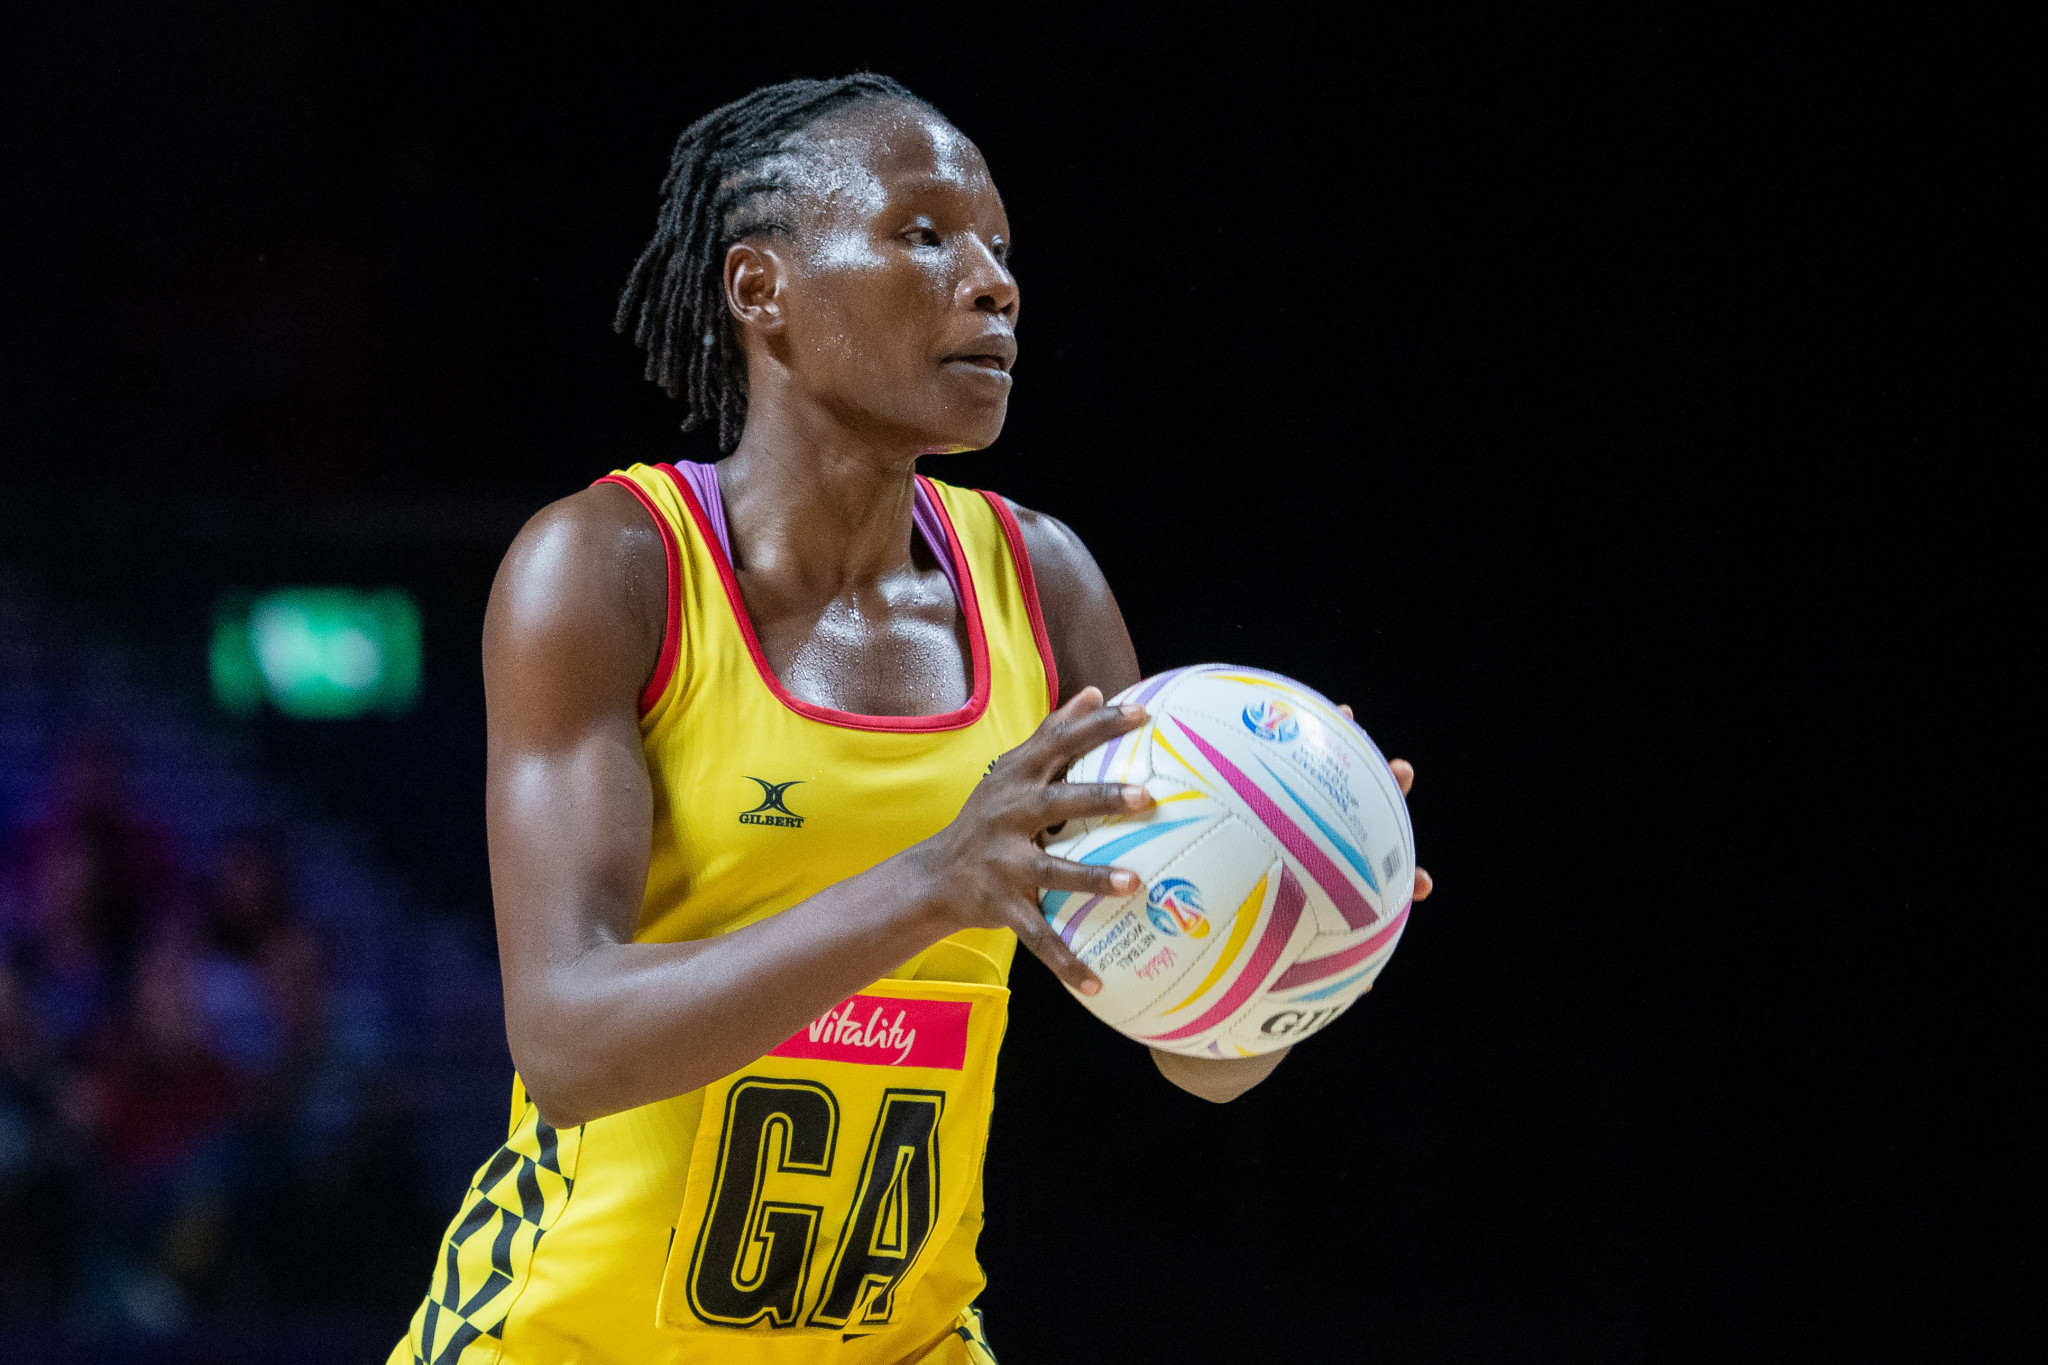 Uganda won their first game of the Africa Netball Cup ©Getty Images